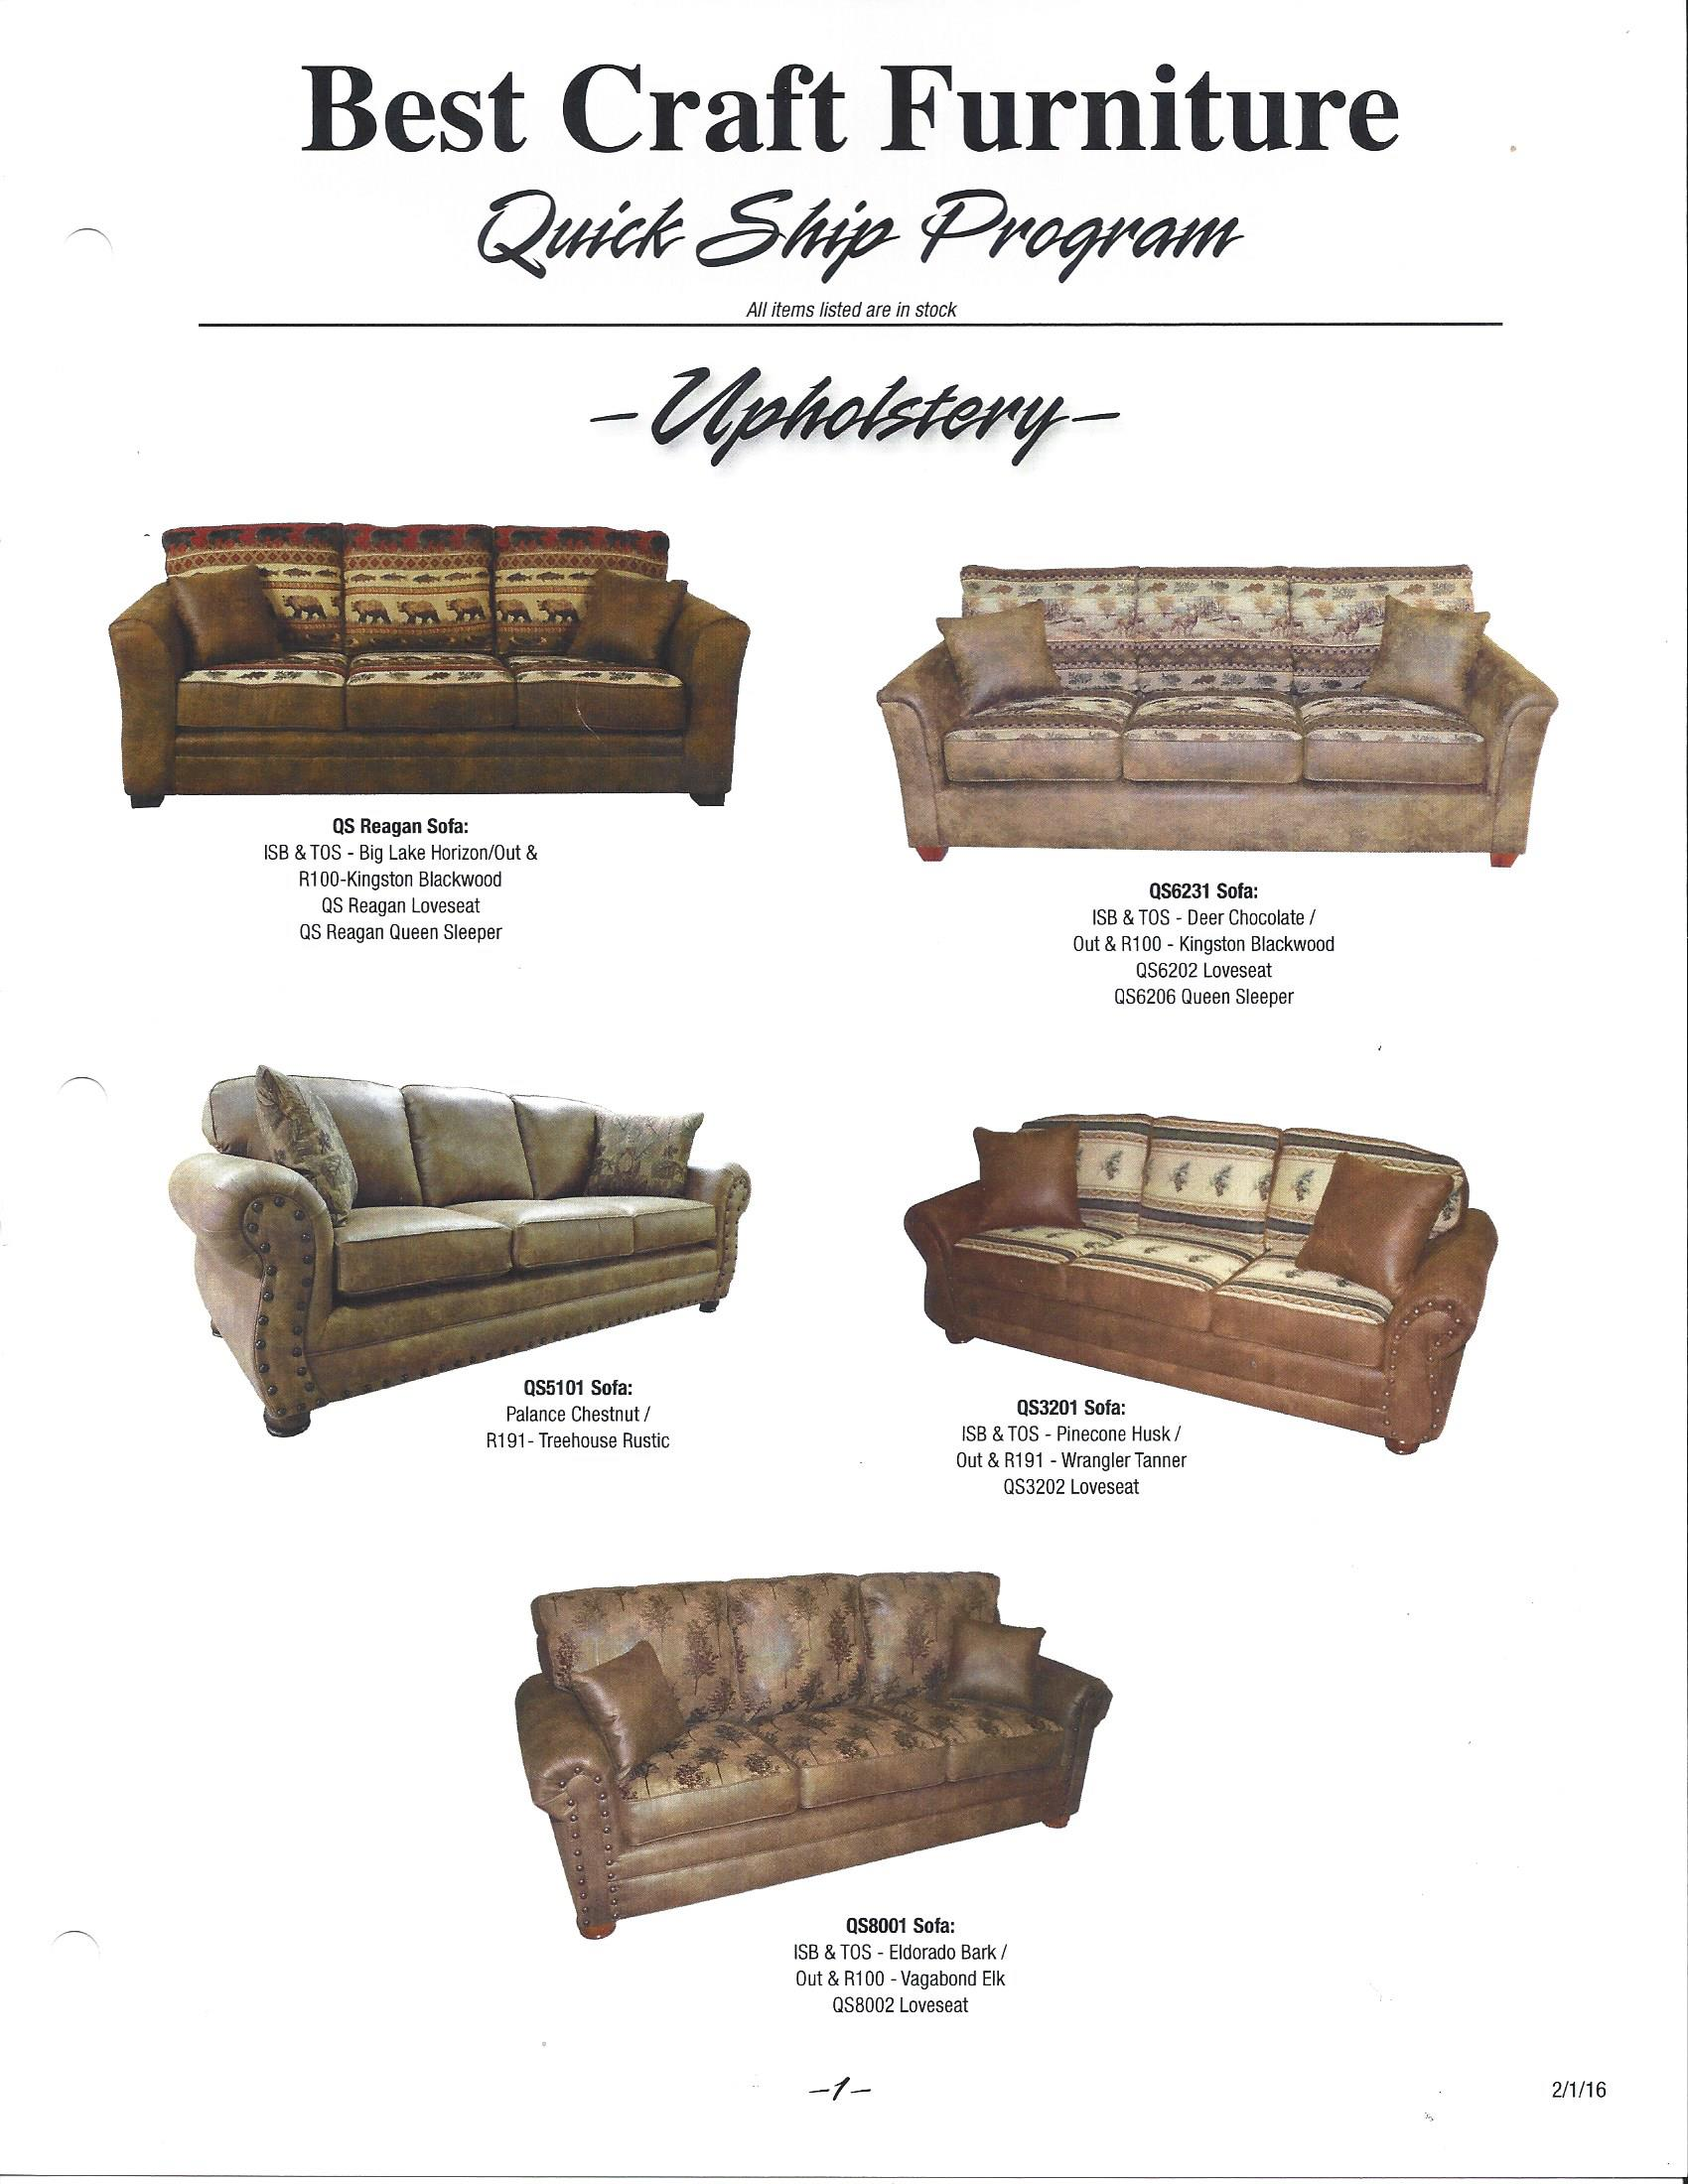 Upholstered furniture cretens furniture for Best quality upholstered furniture